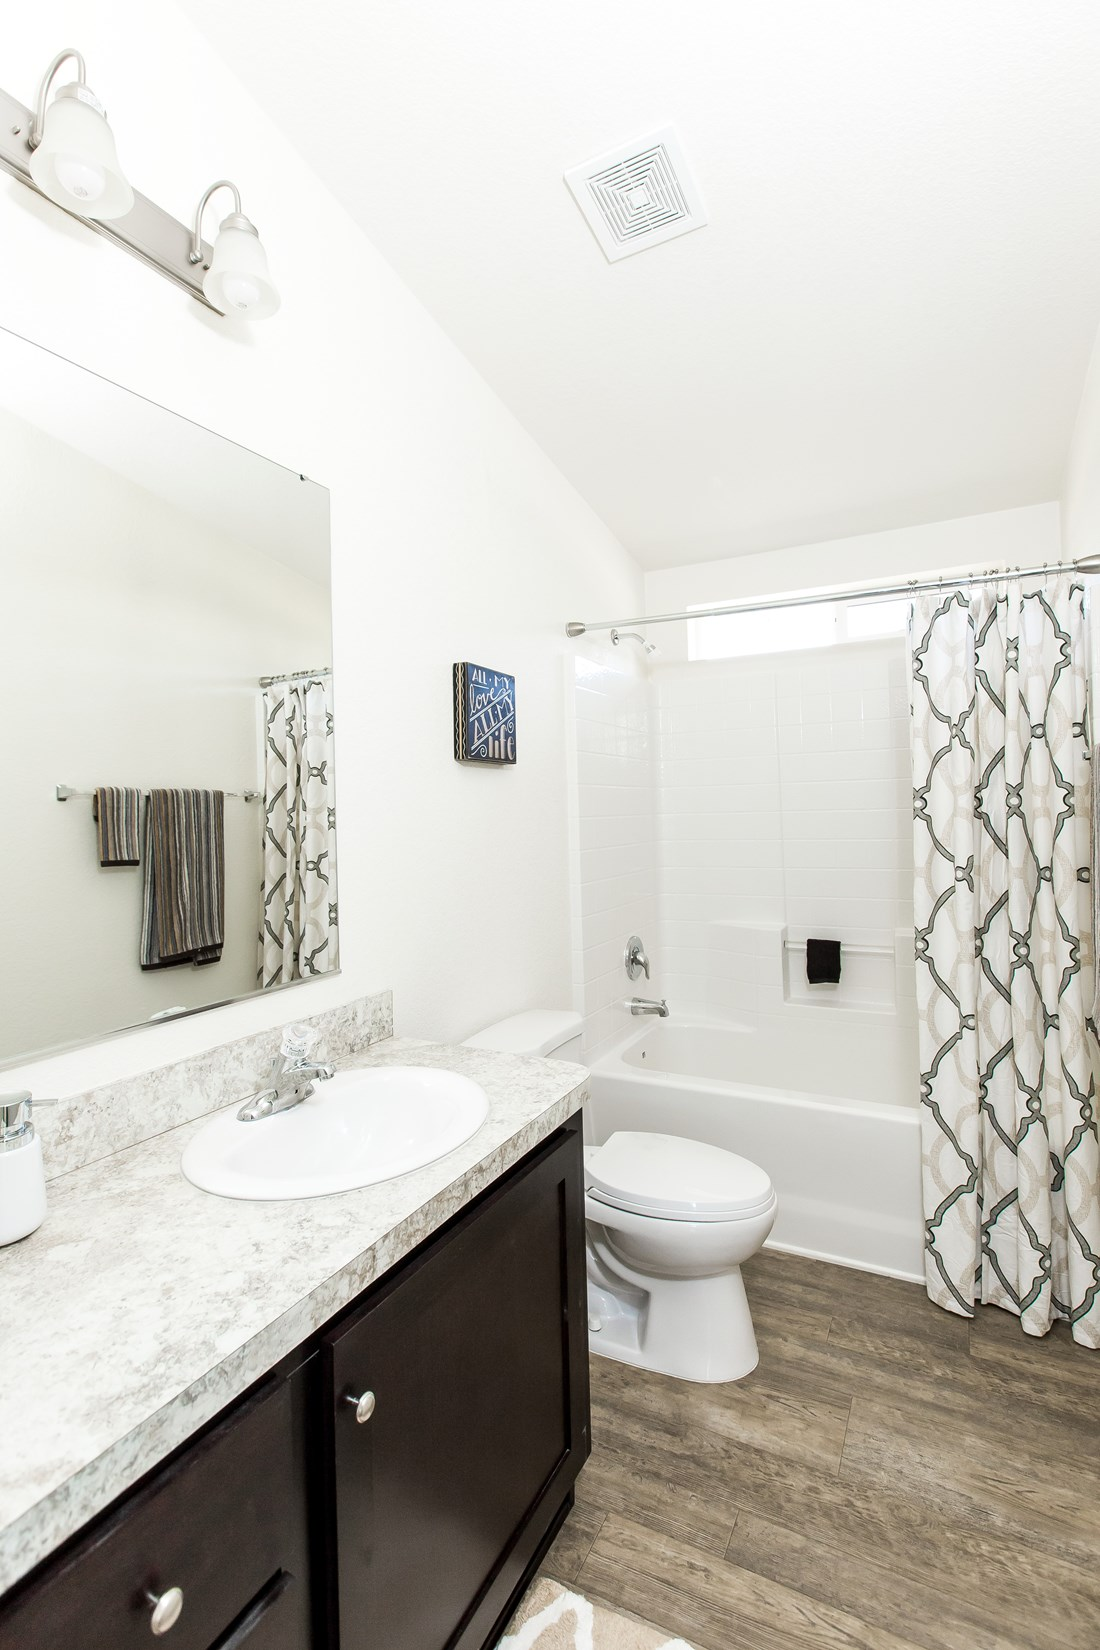 The CK501A Guest Bathroom. This Manufactured Mobile Home features 3 bedrooms and 2 baths.